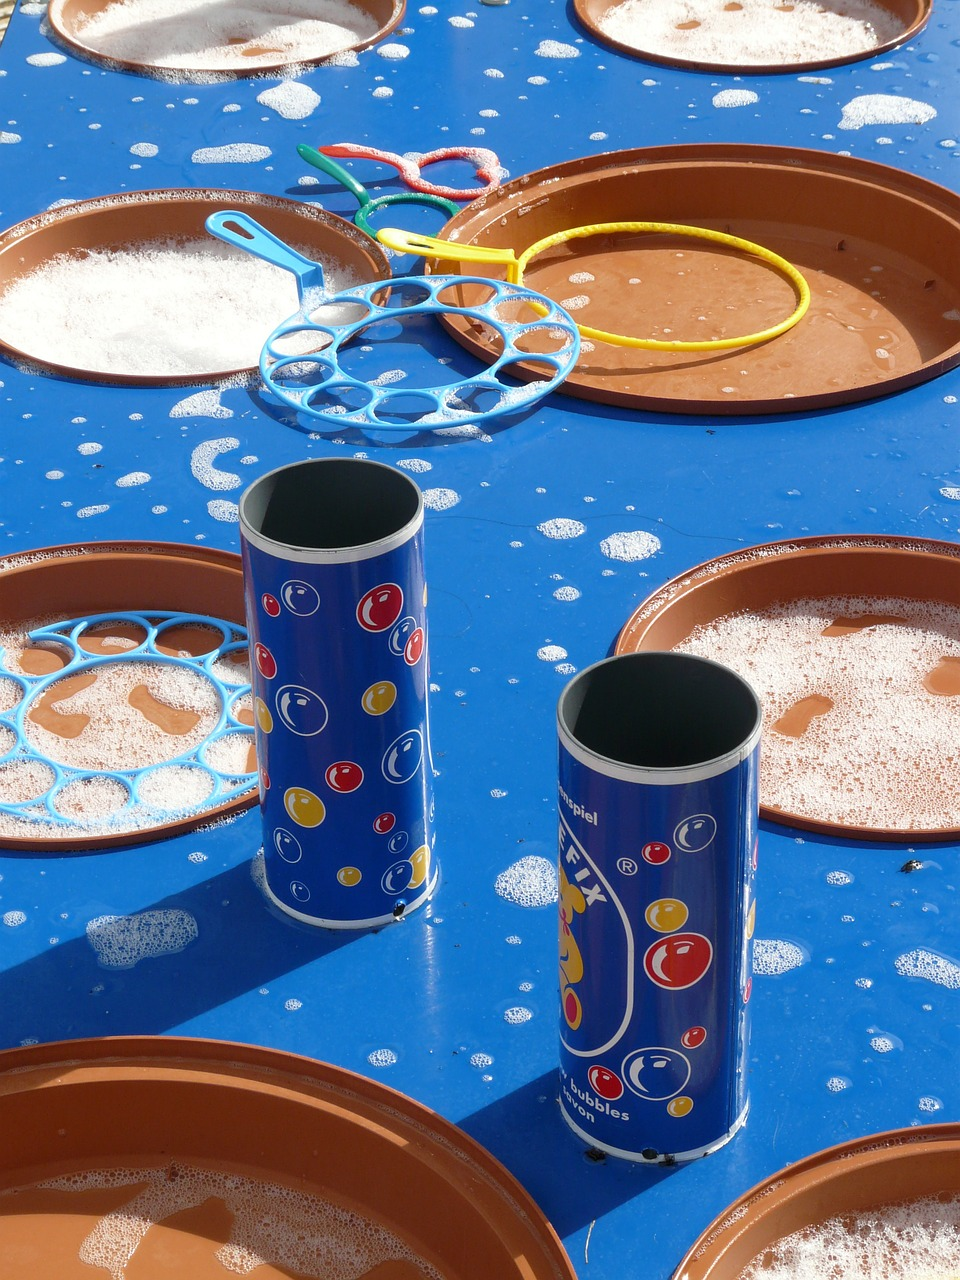 soap bubbles bubble production bubble table free photo